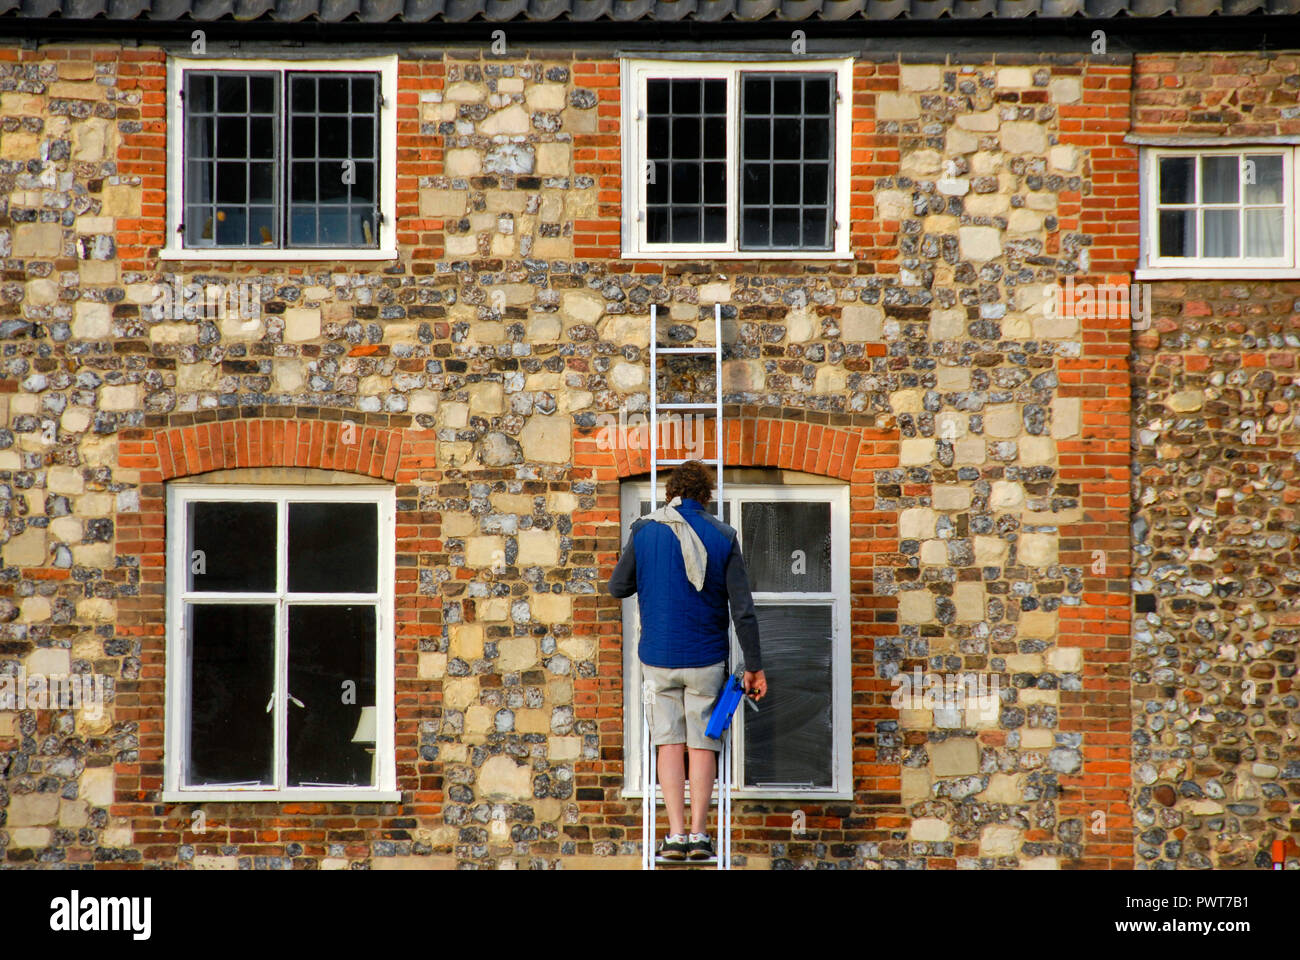 Window Cleaner Ladder Stock Photos Amp Window Cleaner Ladder